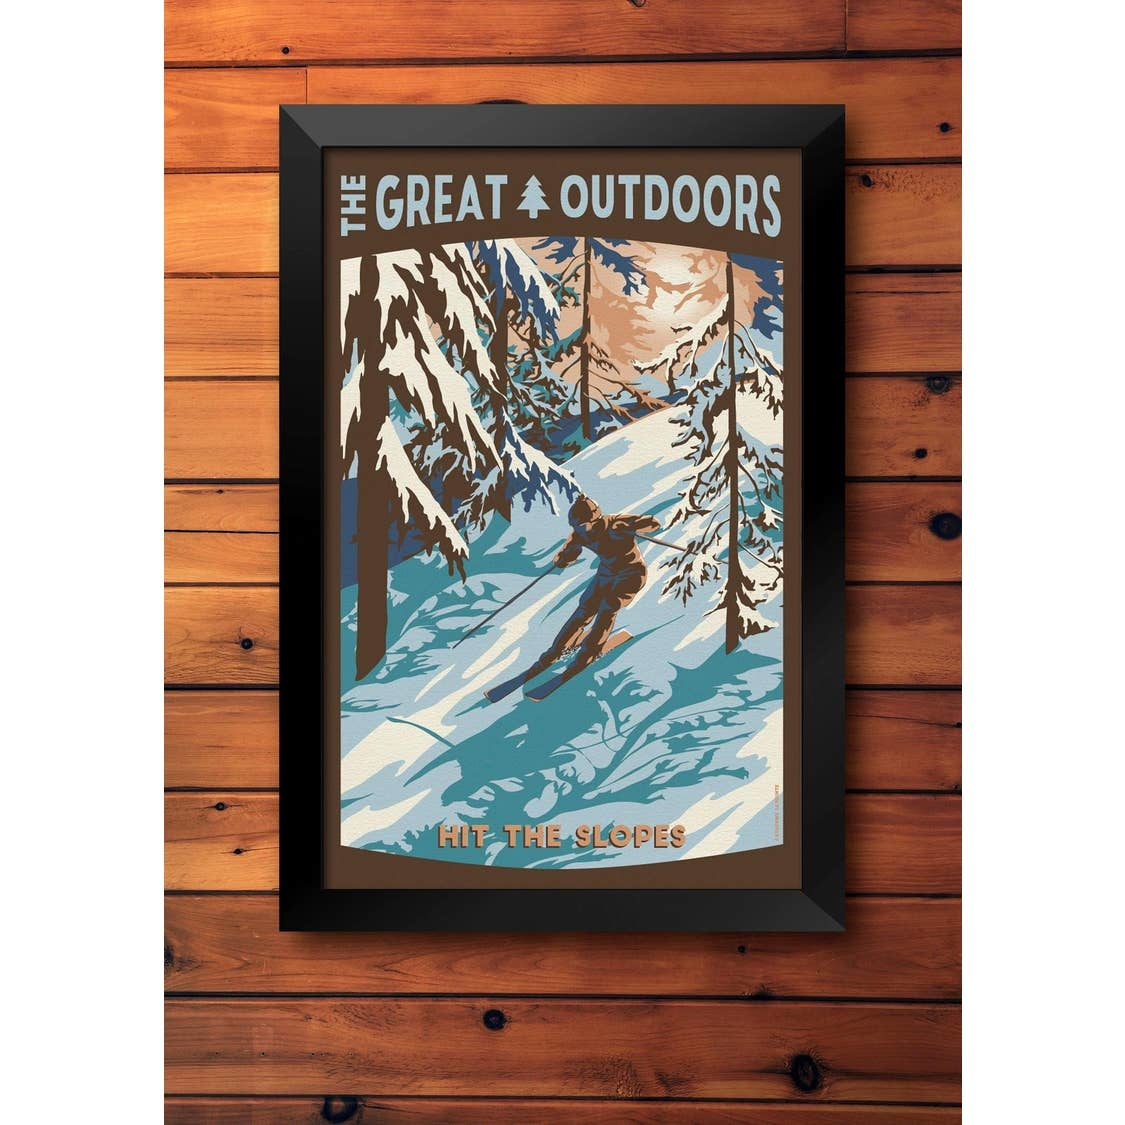 Lionhart Graphics hit the slopes travel poster